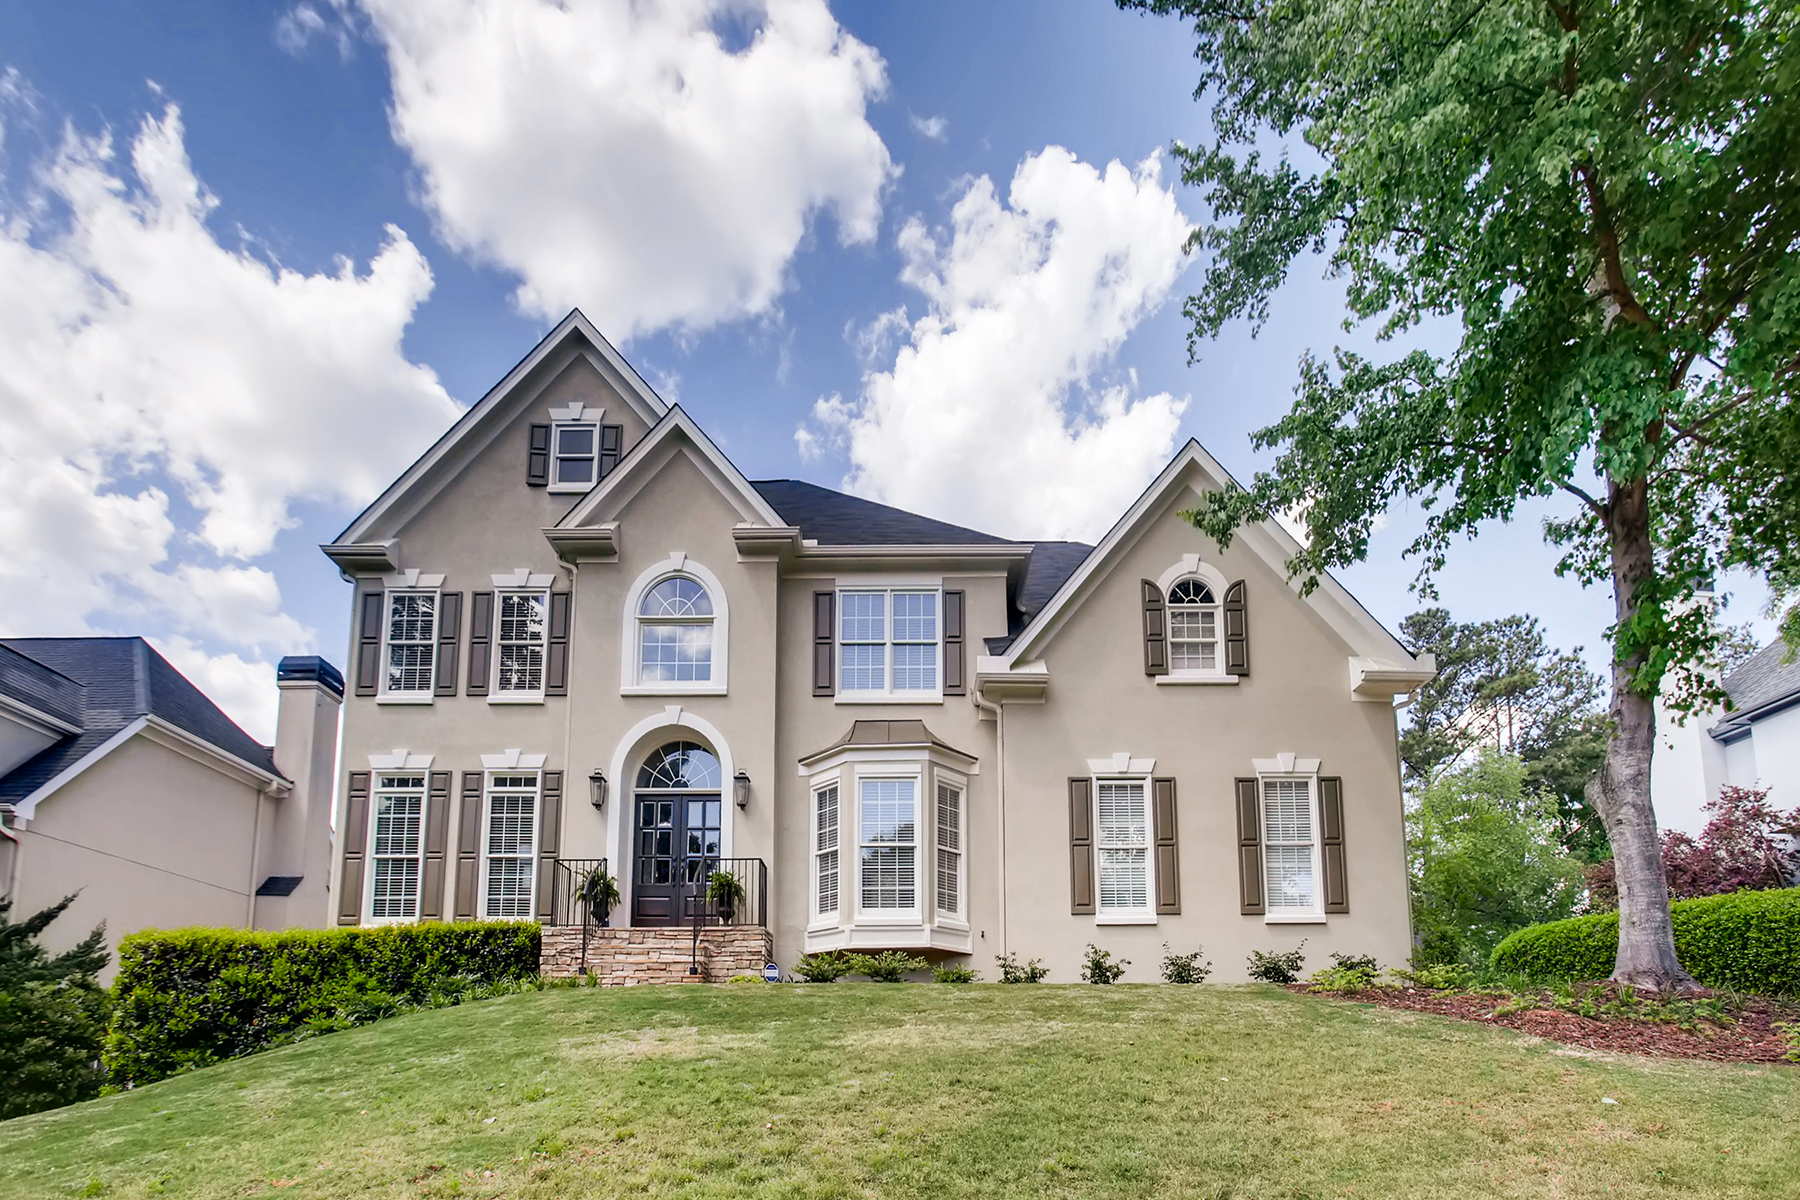 Single Family Home for Sale at Serene And Spectacular In Edenwilde 265 Wilde Green Dr Roswell, Georgia 30075 United States